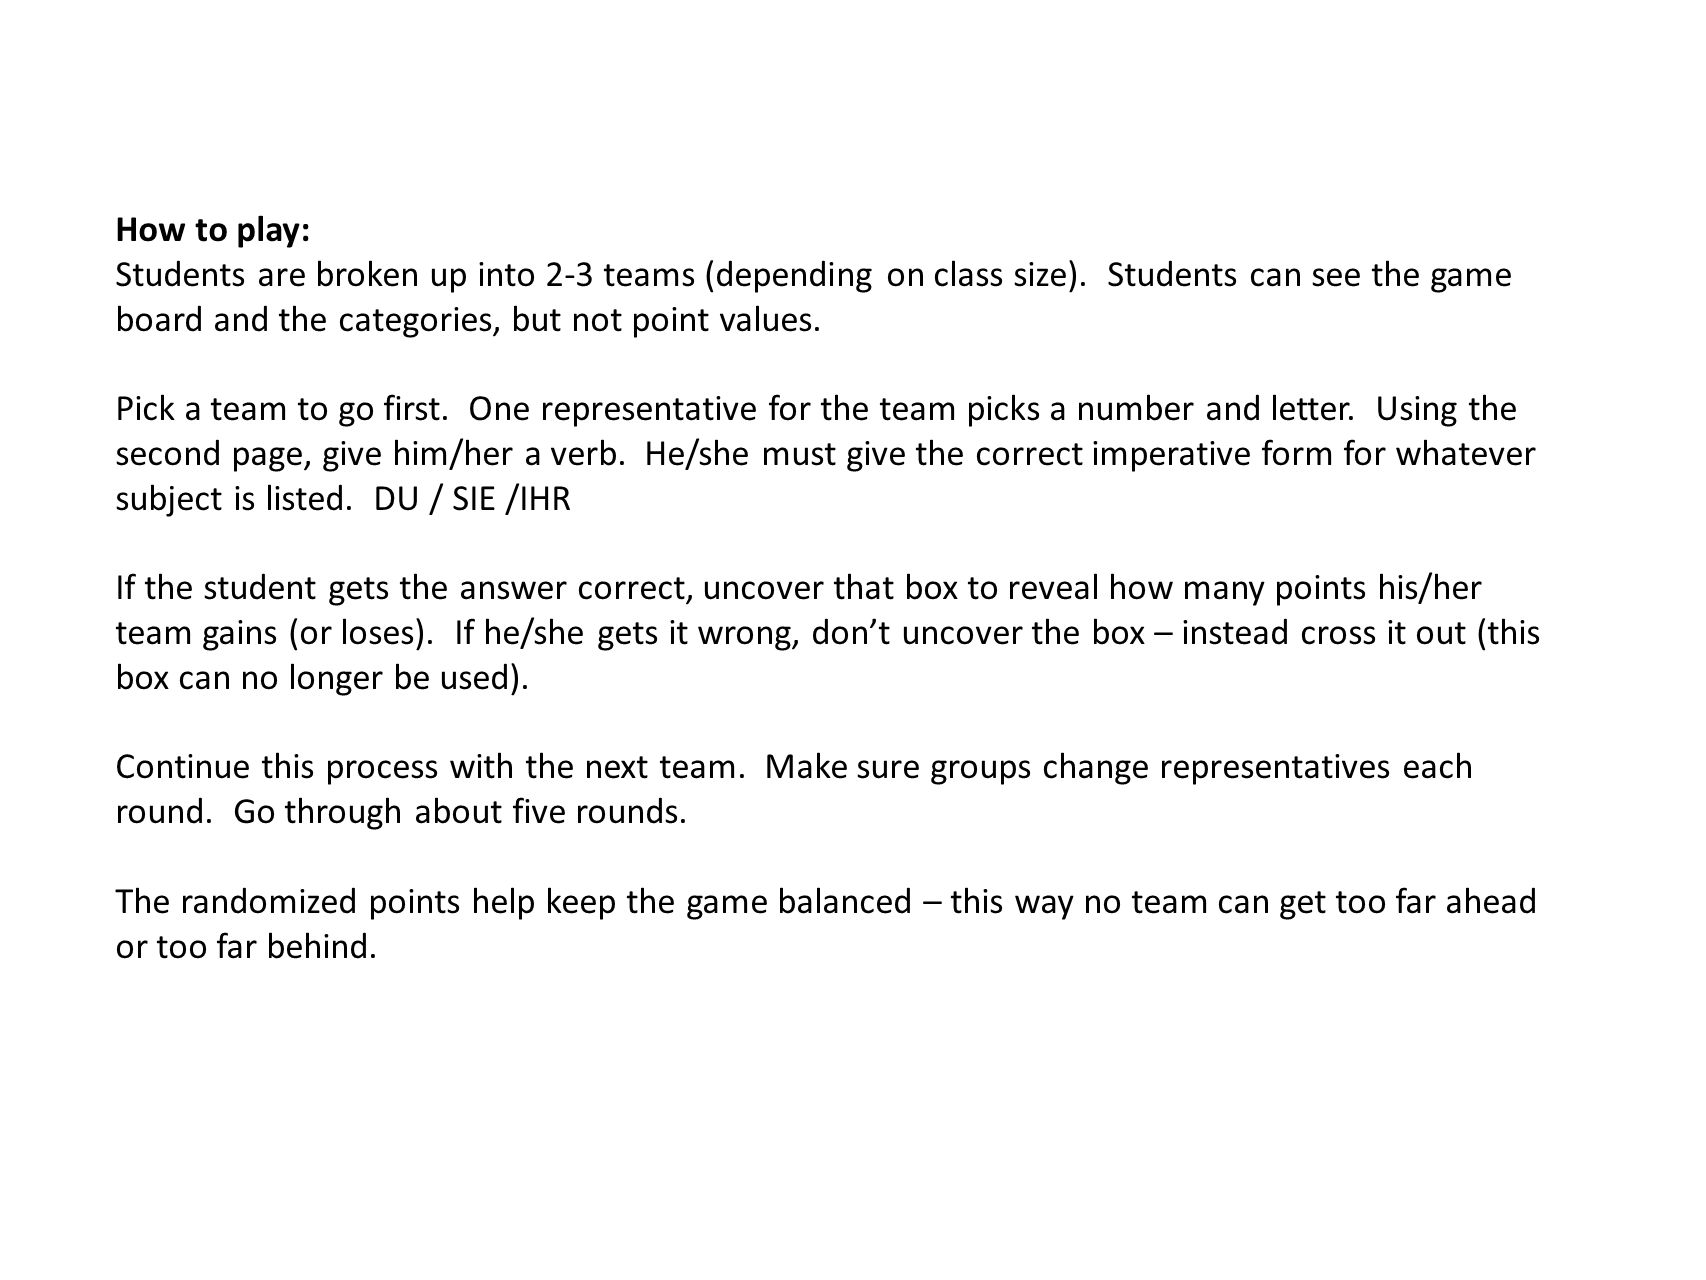 How to play: Students are broken up into 2-3 teams (depending on class size).